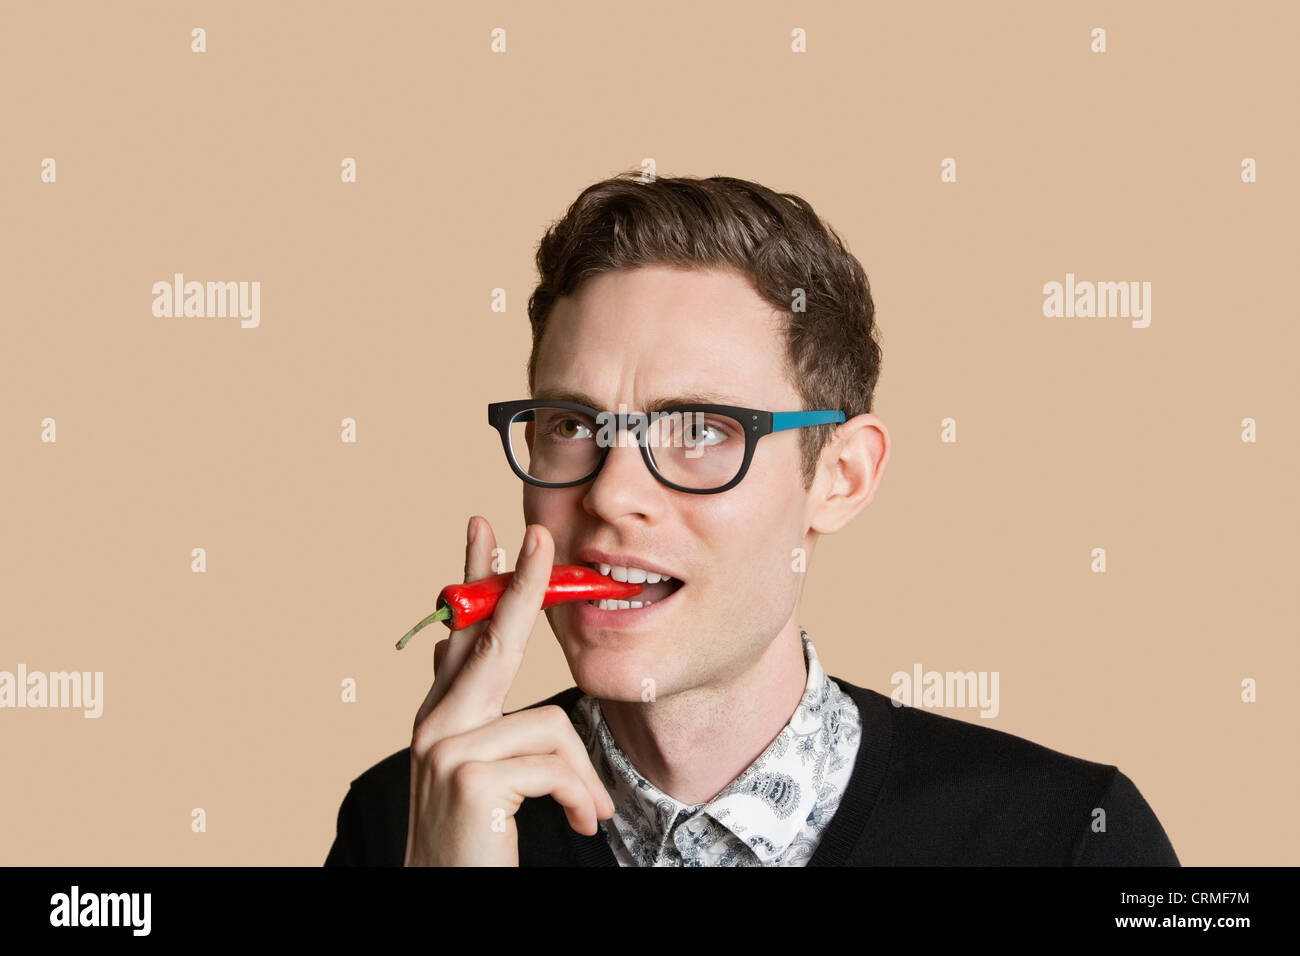 Mid adult man smoking red chili pepper over colored background - Stock Image